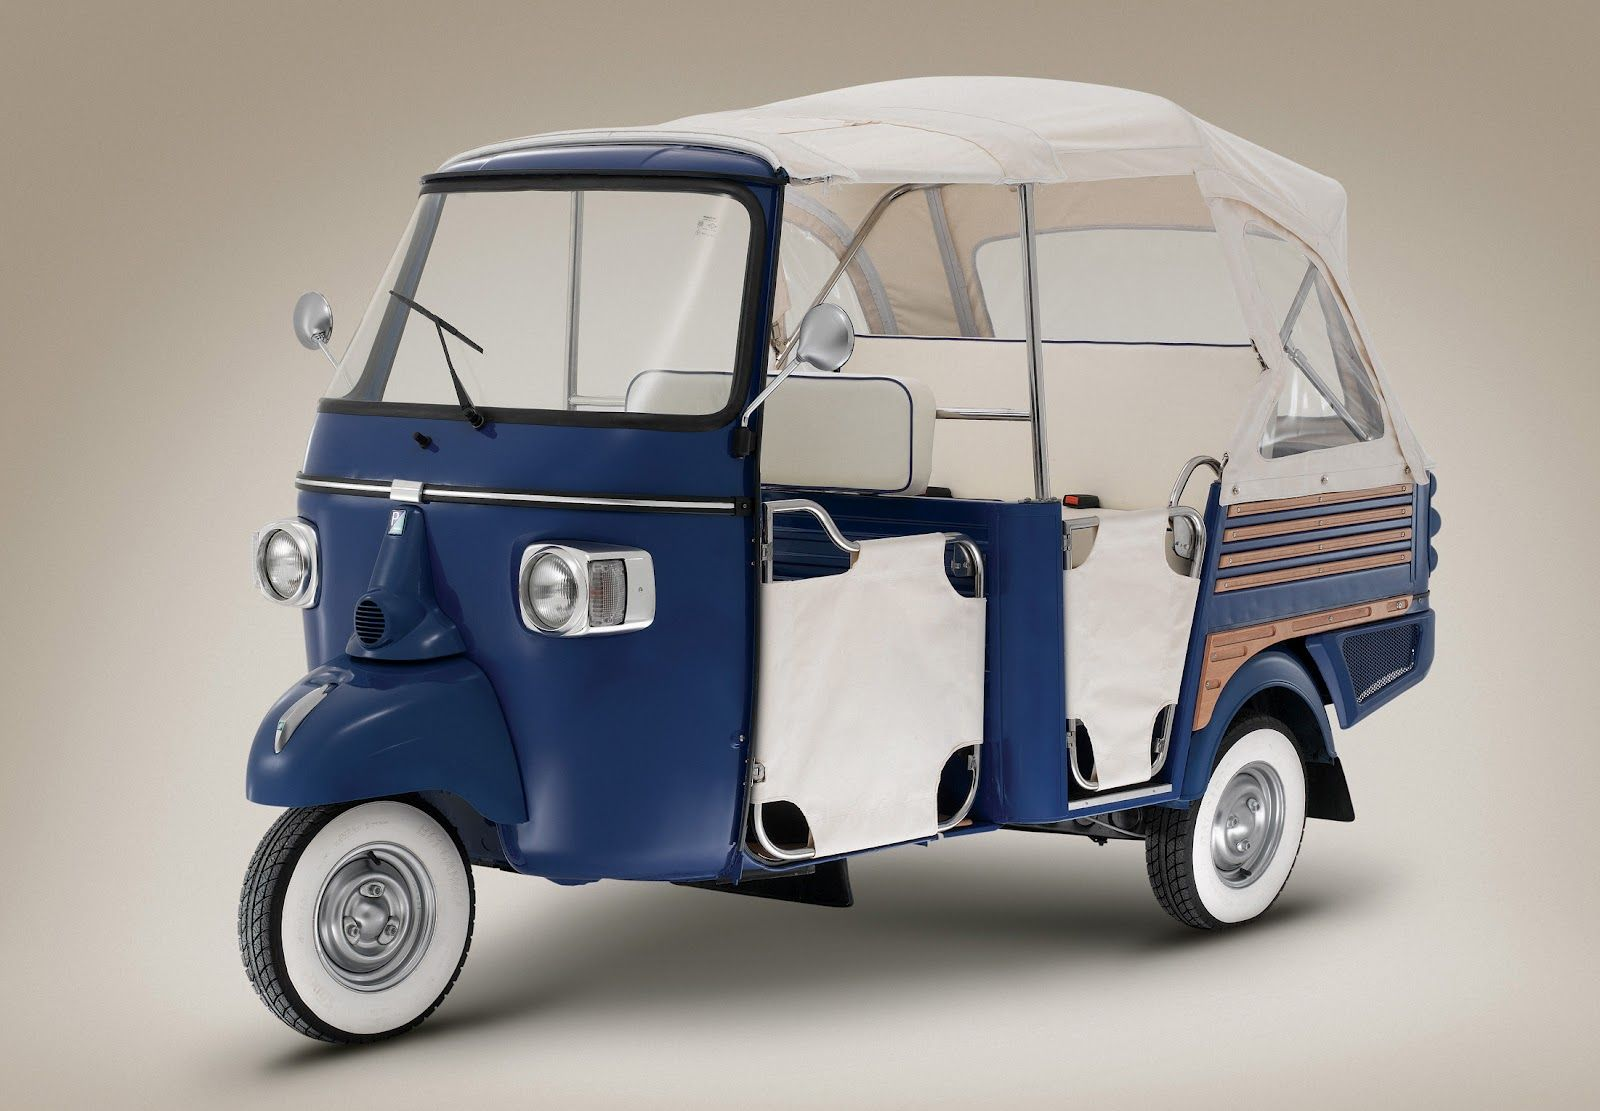 vespa ape calessino vespas piaggio ape vespa ape y cars. Black Bedroom Furniture Sets. Home Design Ideas